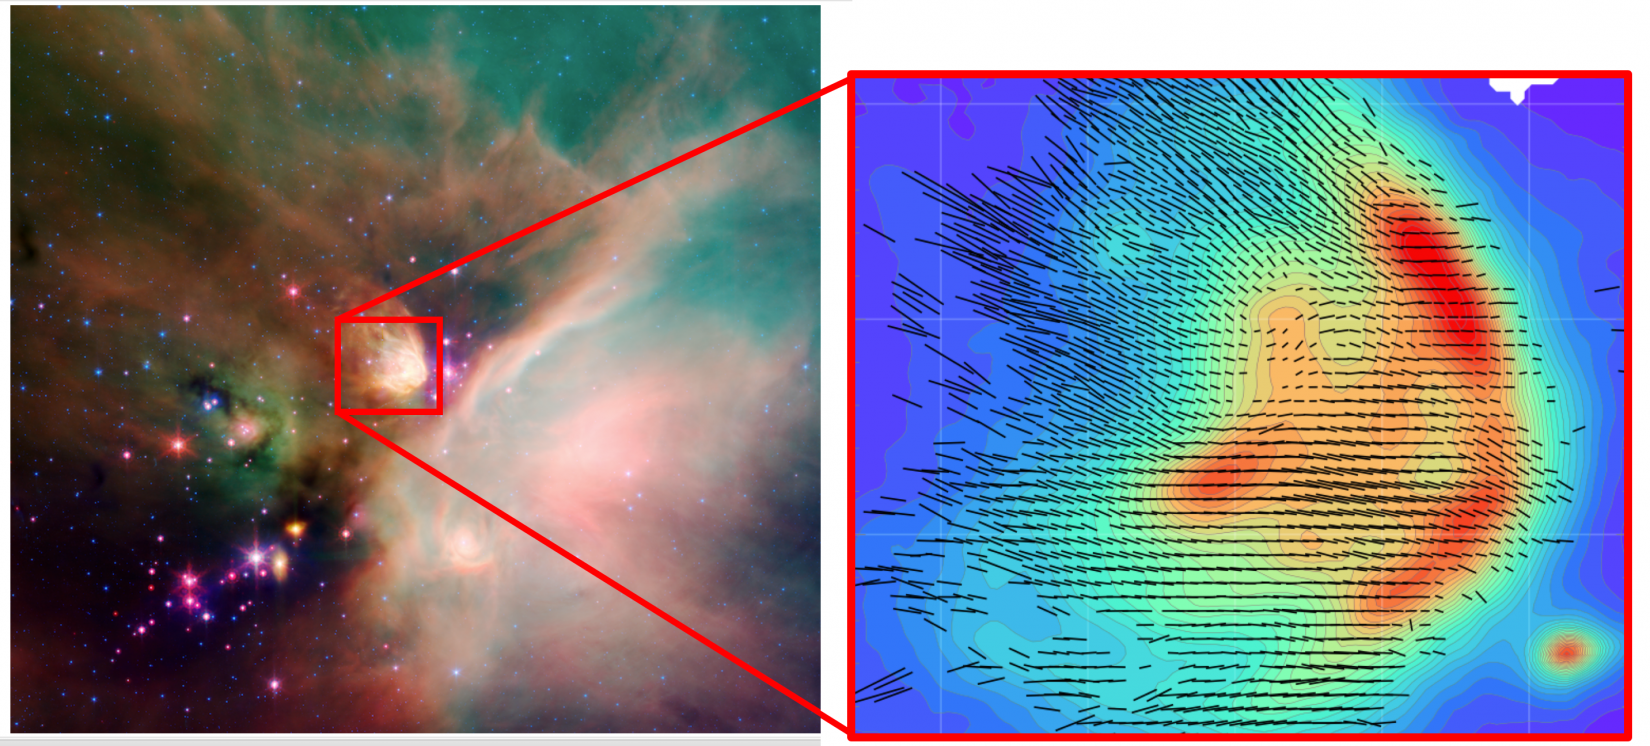 Images showing Rho Oph dark cloud and systematic variations in the polarization